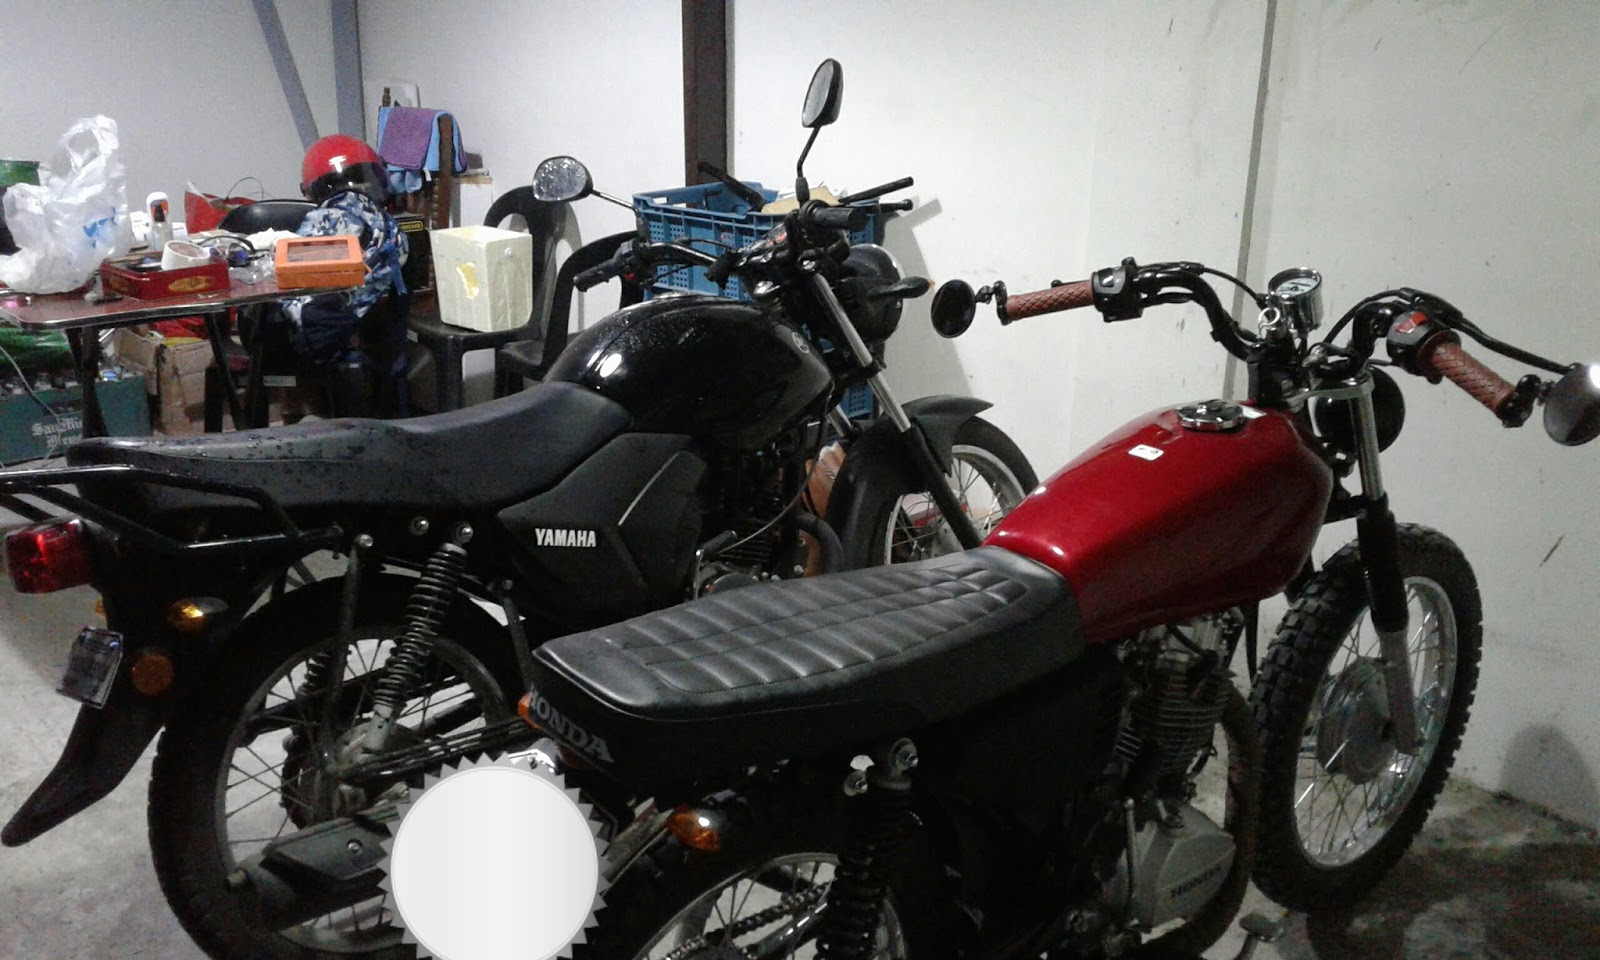 Rainy Day 1 Yamaha Ytx 125 And Tmx Alpha Comparison Kotse Dude Battery Rack Wiring Diagram My Cousin I Recently Bought Bikes Our Ultimate Plan Is To Turn These Into Cafe Racers His Bike A Mine